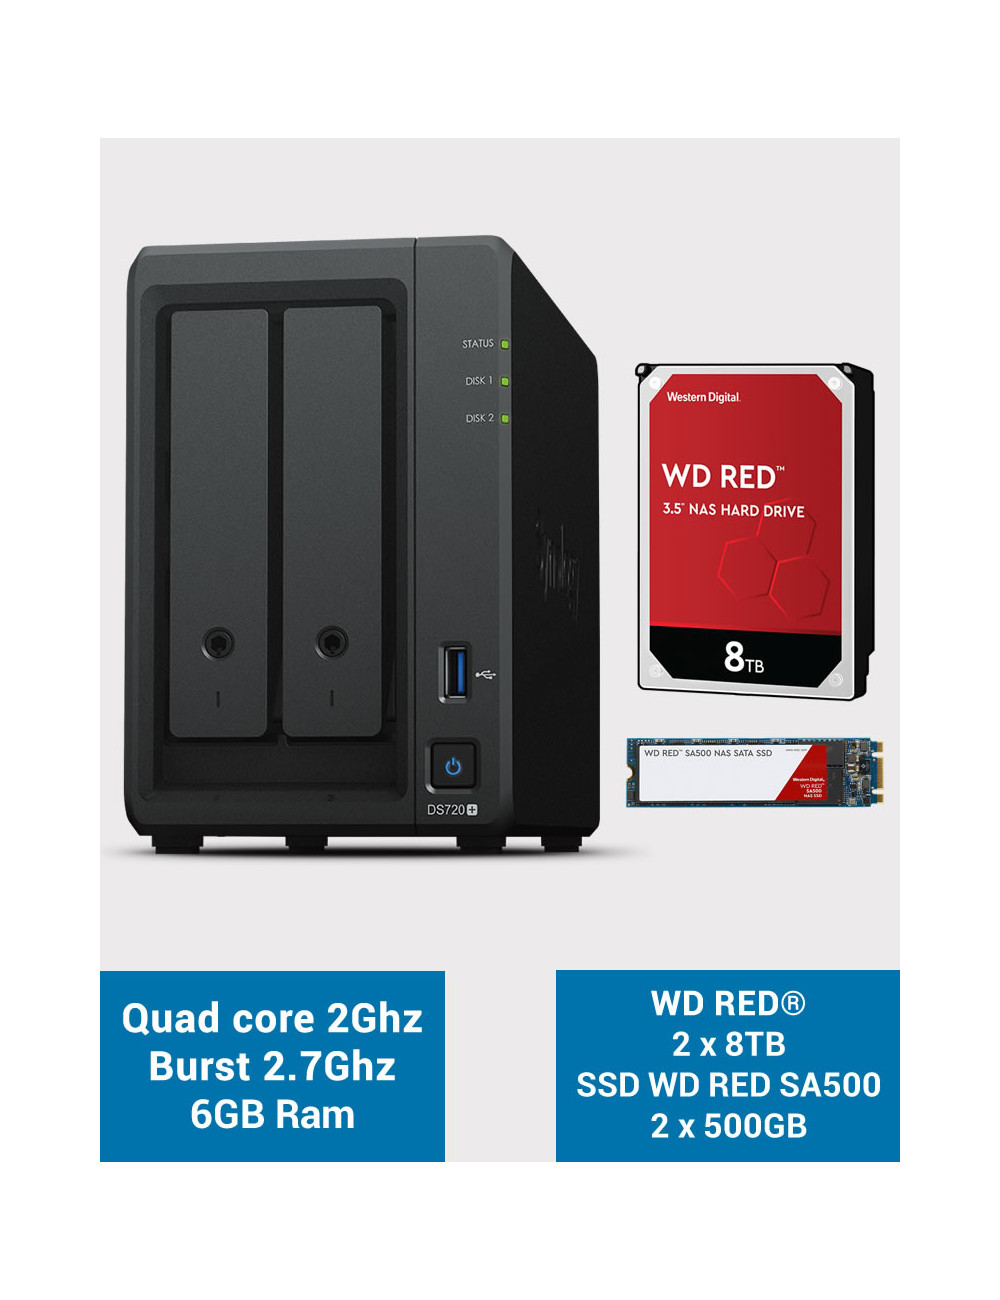 Synology DS720+ 6Go CACHE SSD M.2 WD RED 16To (2x8To)